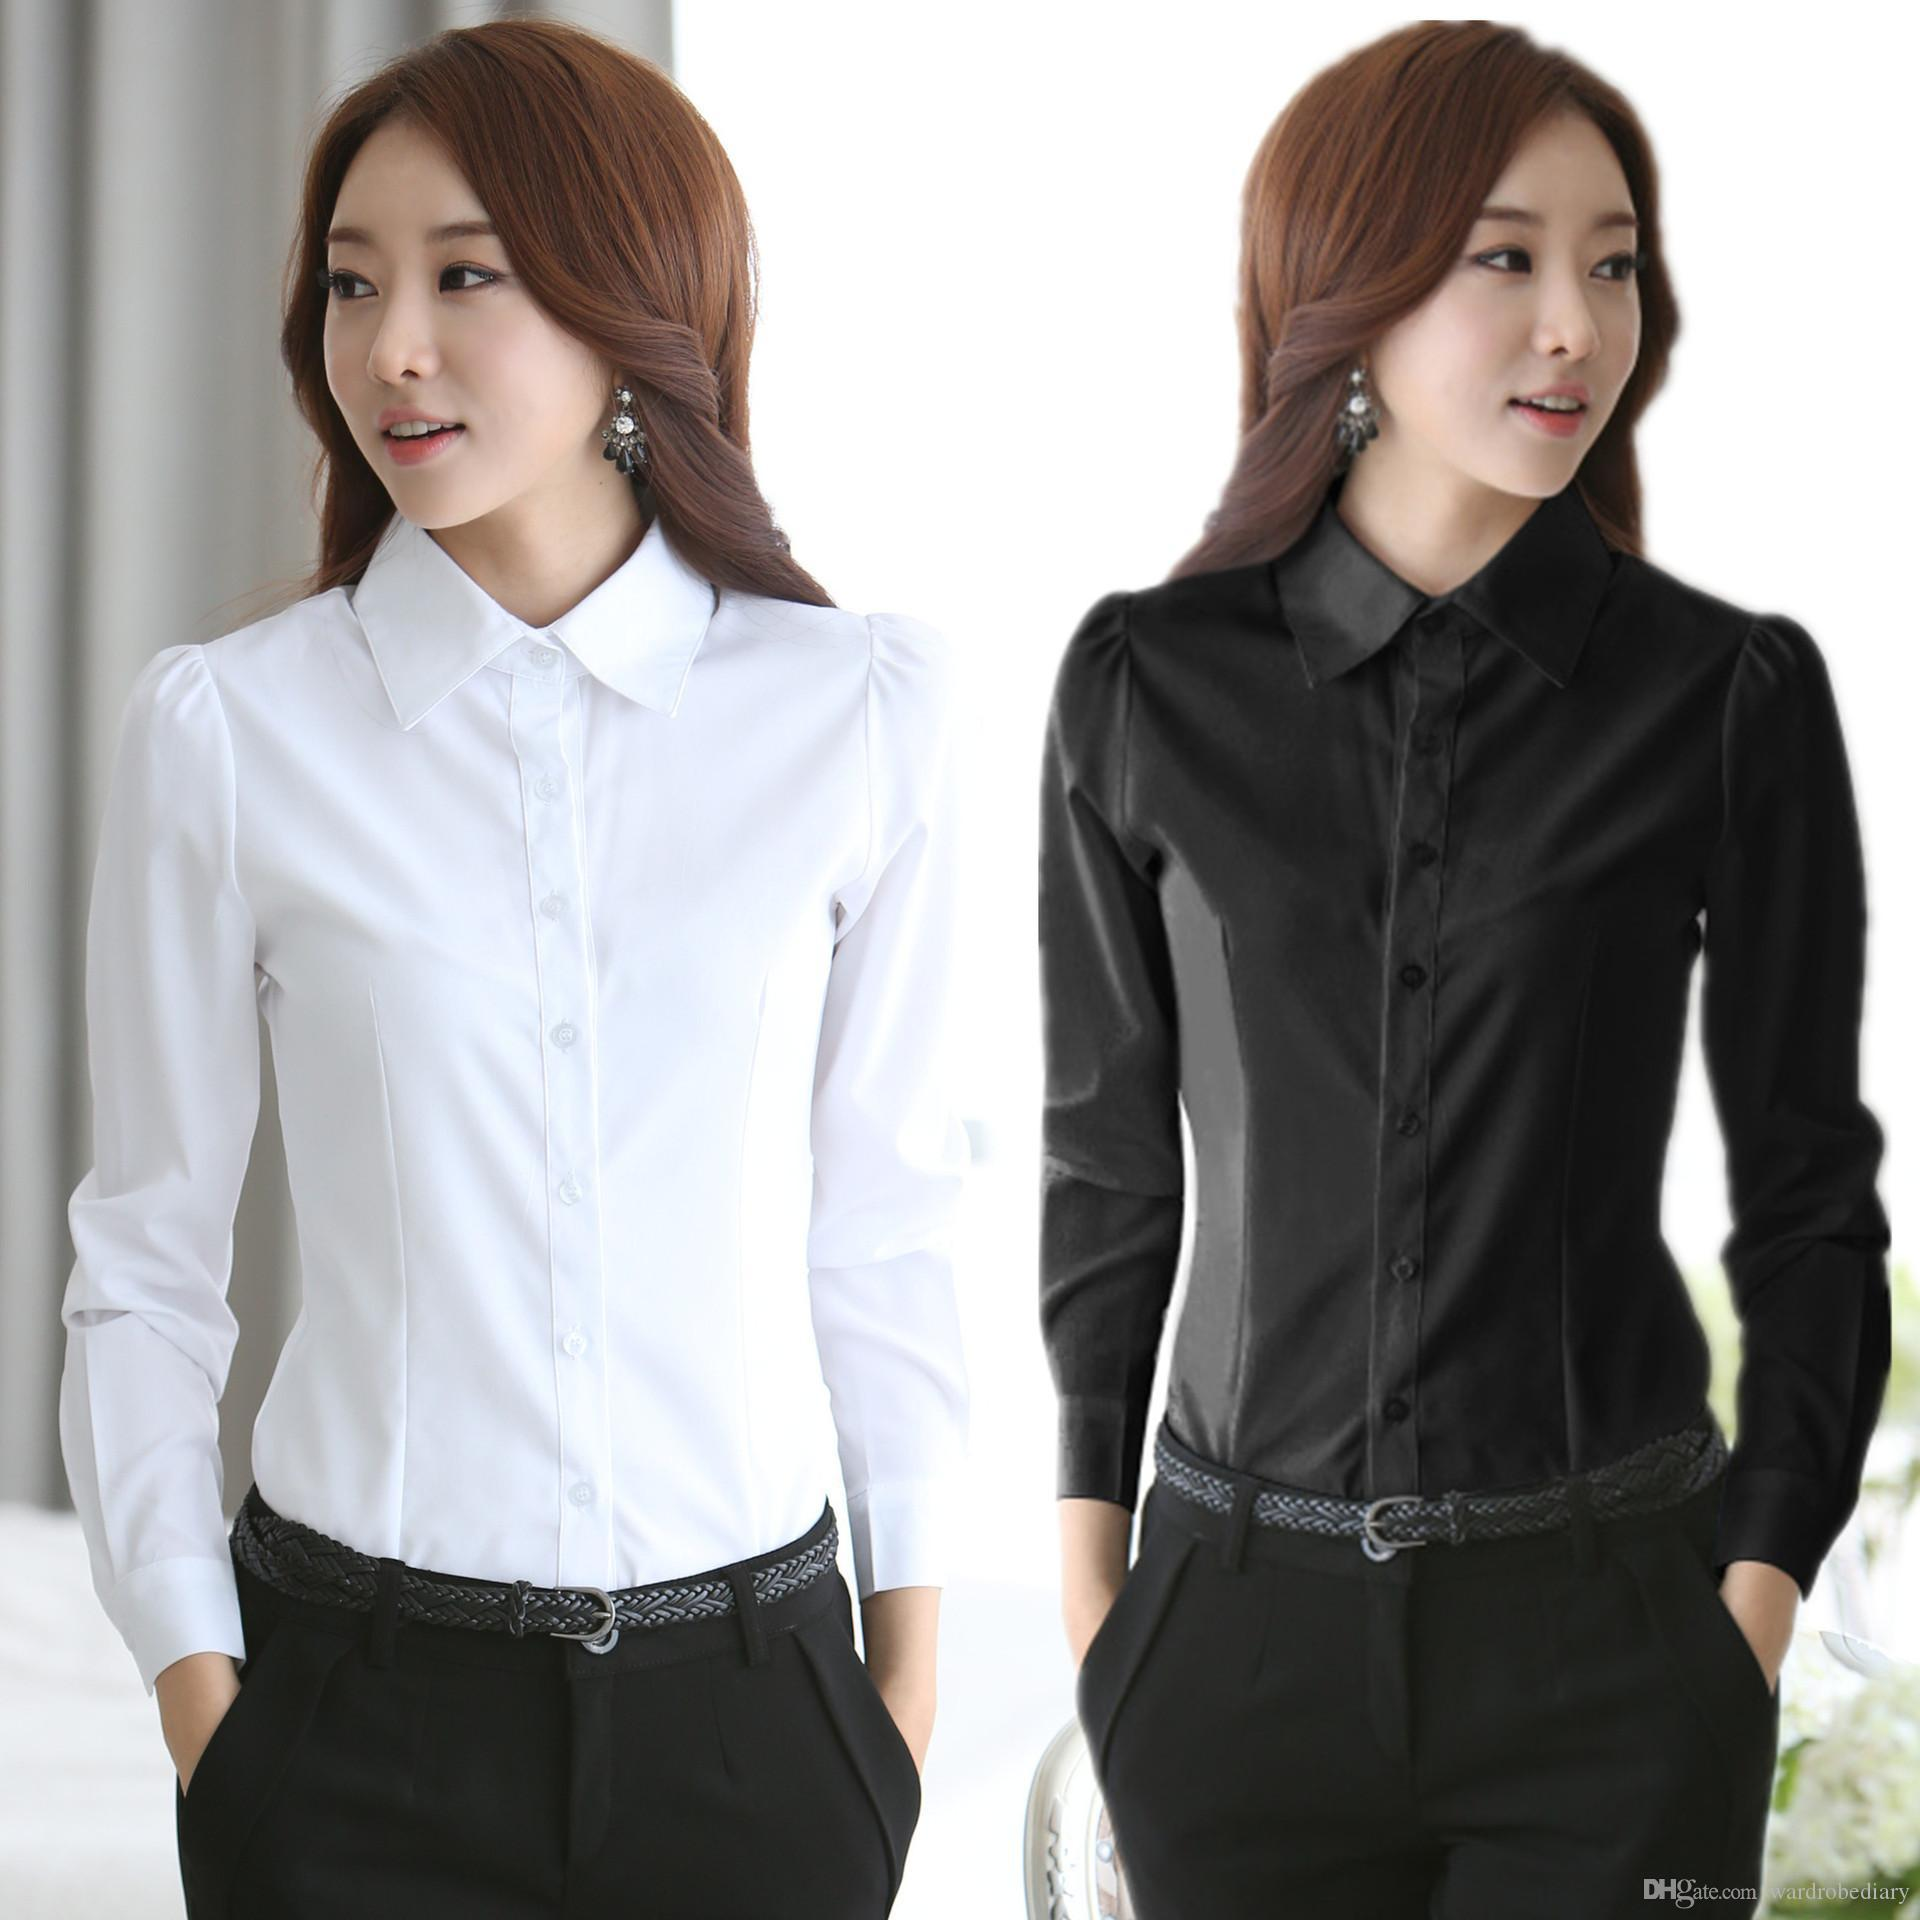 109d3c83680 New Fashion Blouses Shirts Women White Shirt Office Lady OL work wear Long  Sleeve Tops Slim Women's Blouses Shirts S-4XL casual blusas